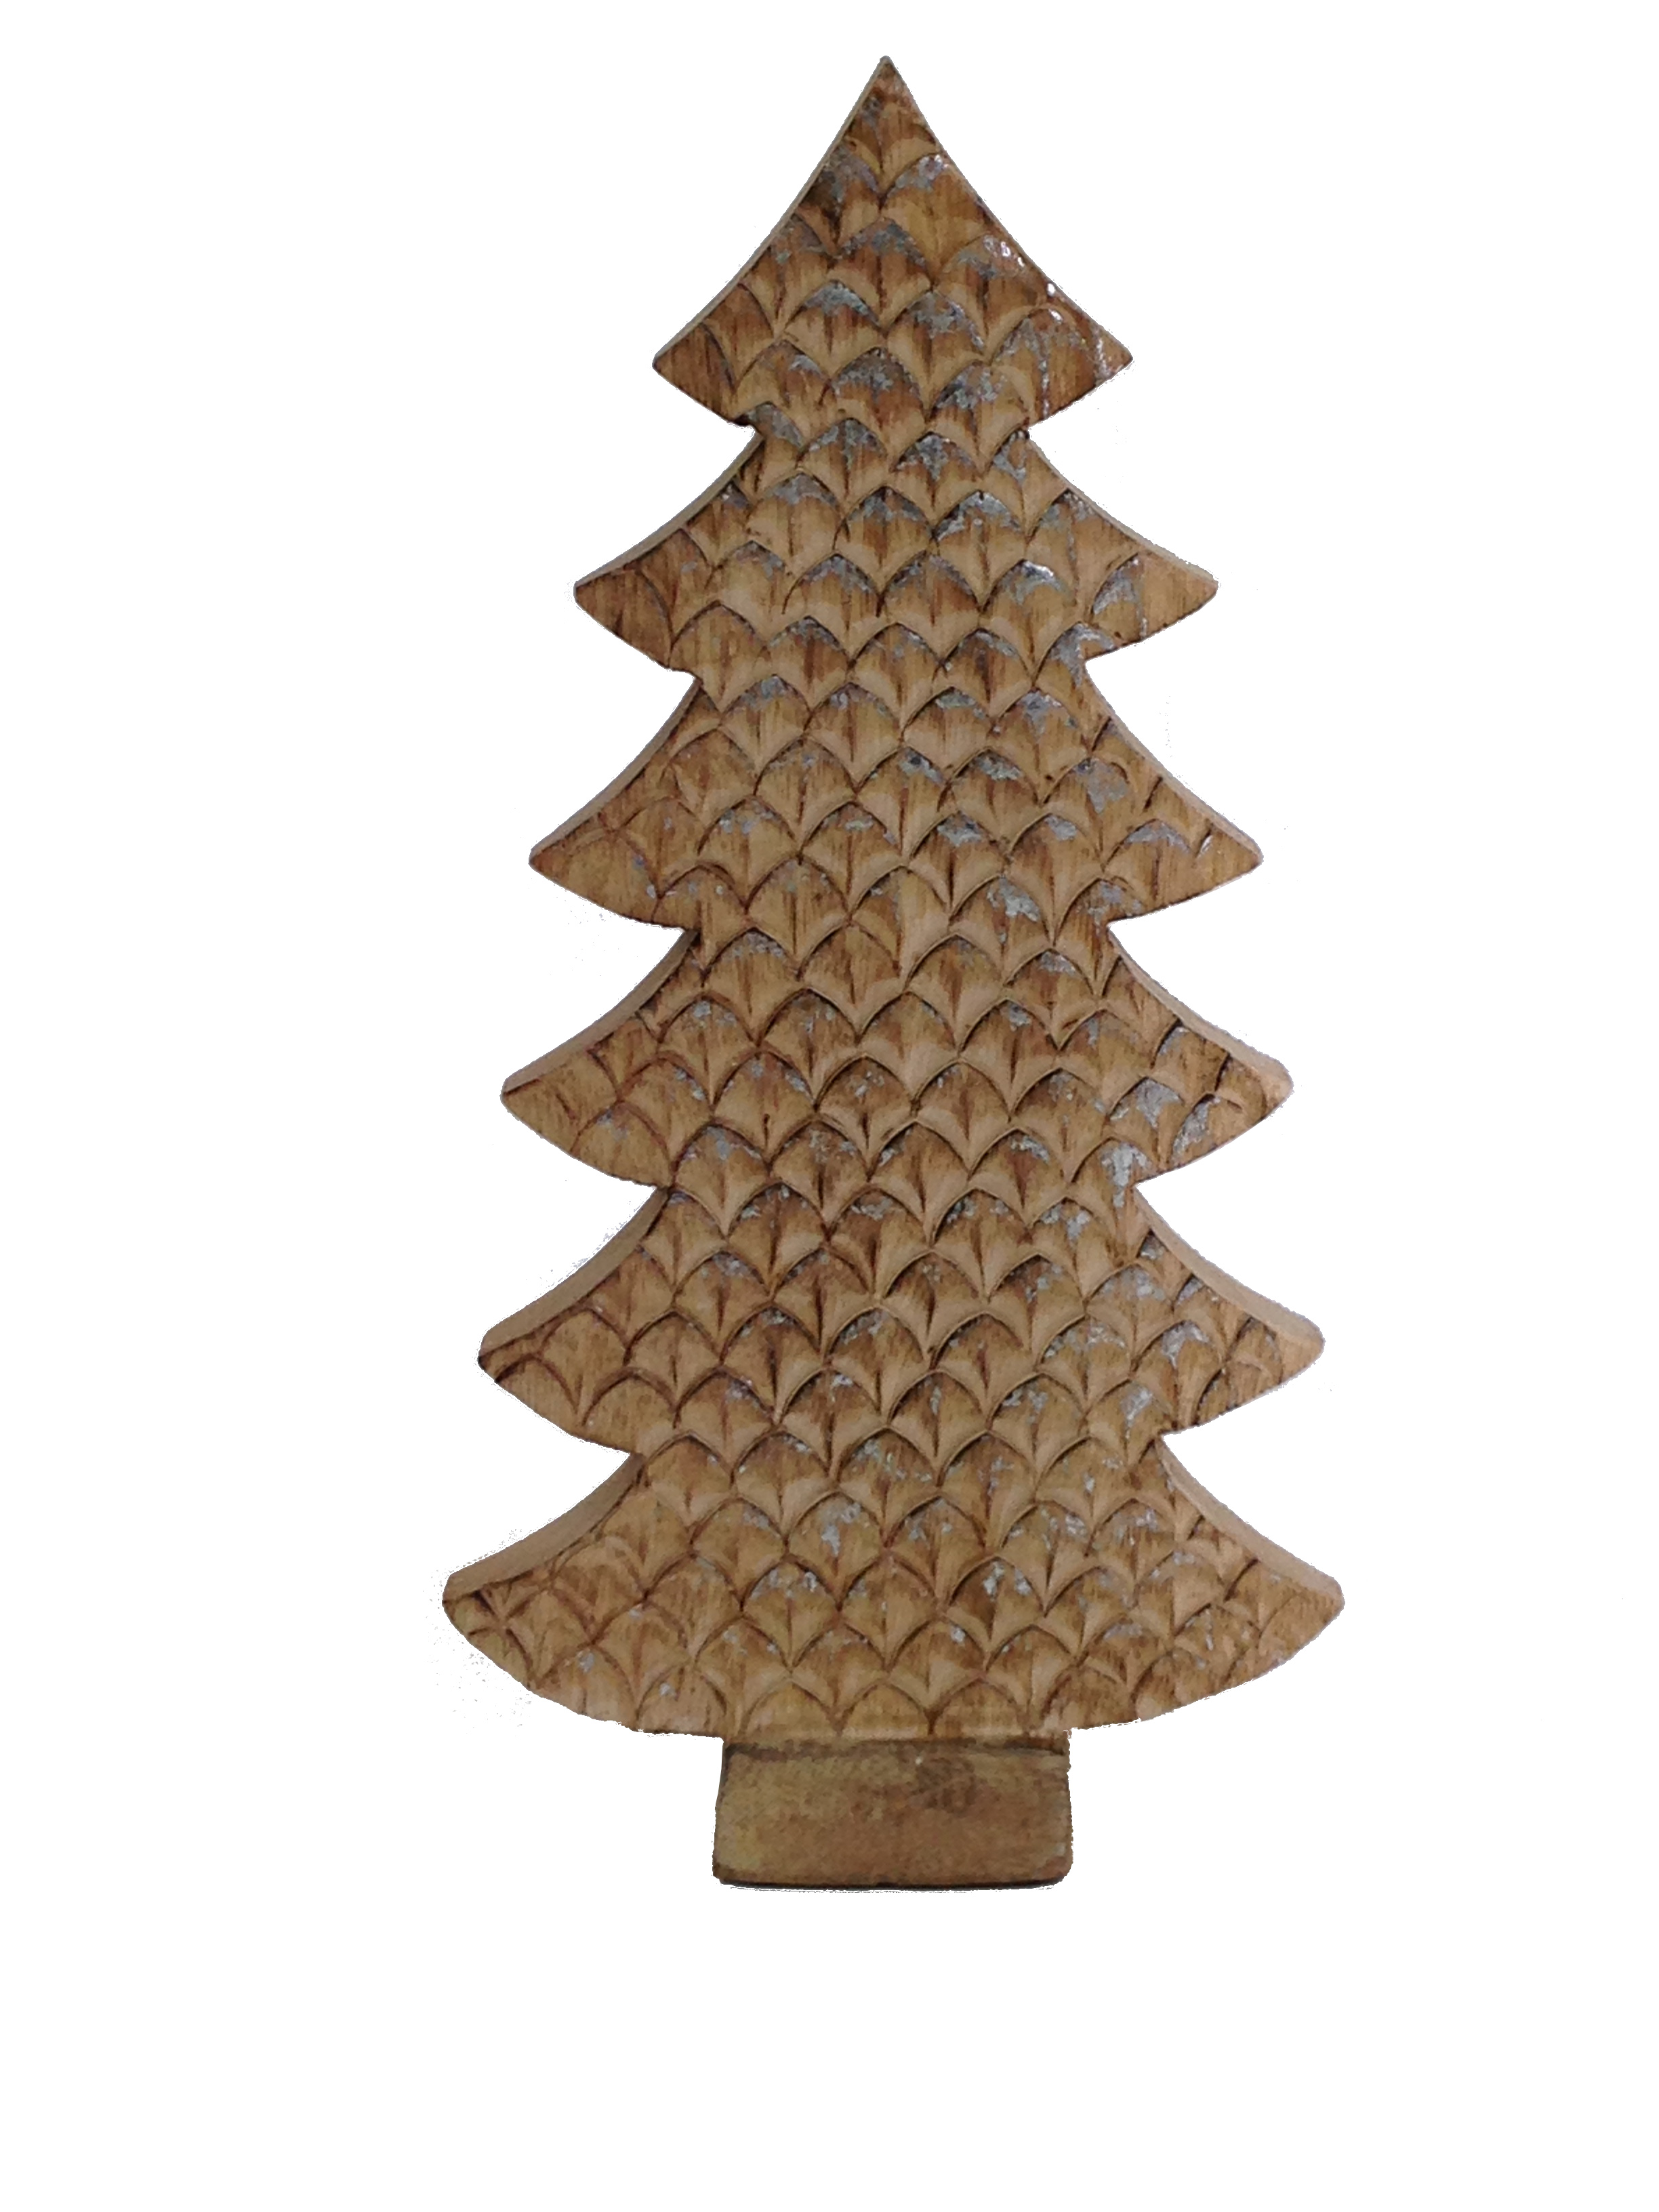 Khaos Dump Occasions Christmas Christmas Decoration Christmas Trees 30cm Mango Wood Christmas Tree Stand Michael Dark Florist Supplies Huge Range Wholesale Prices